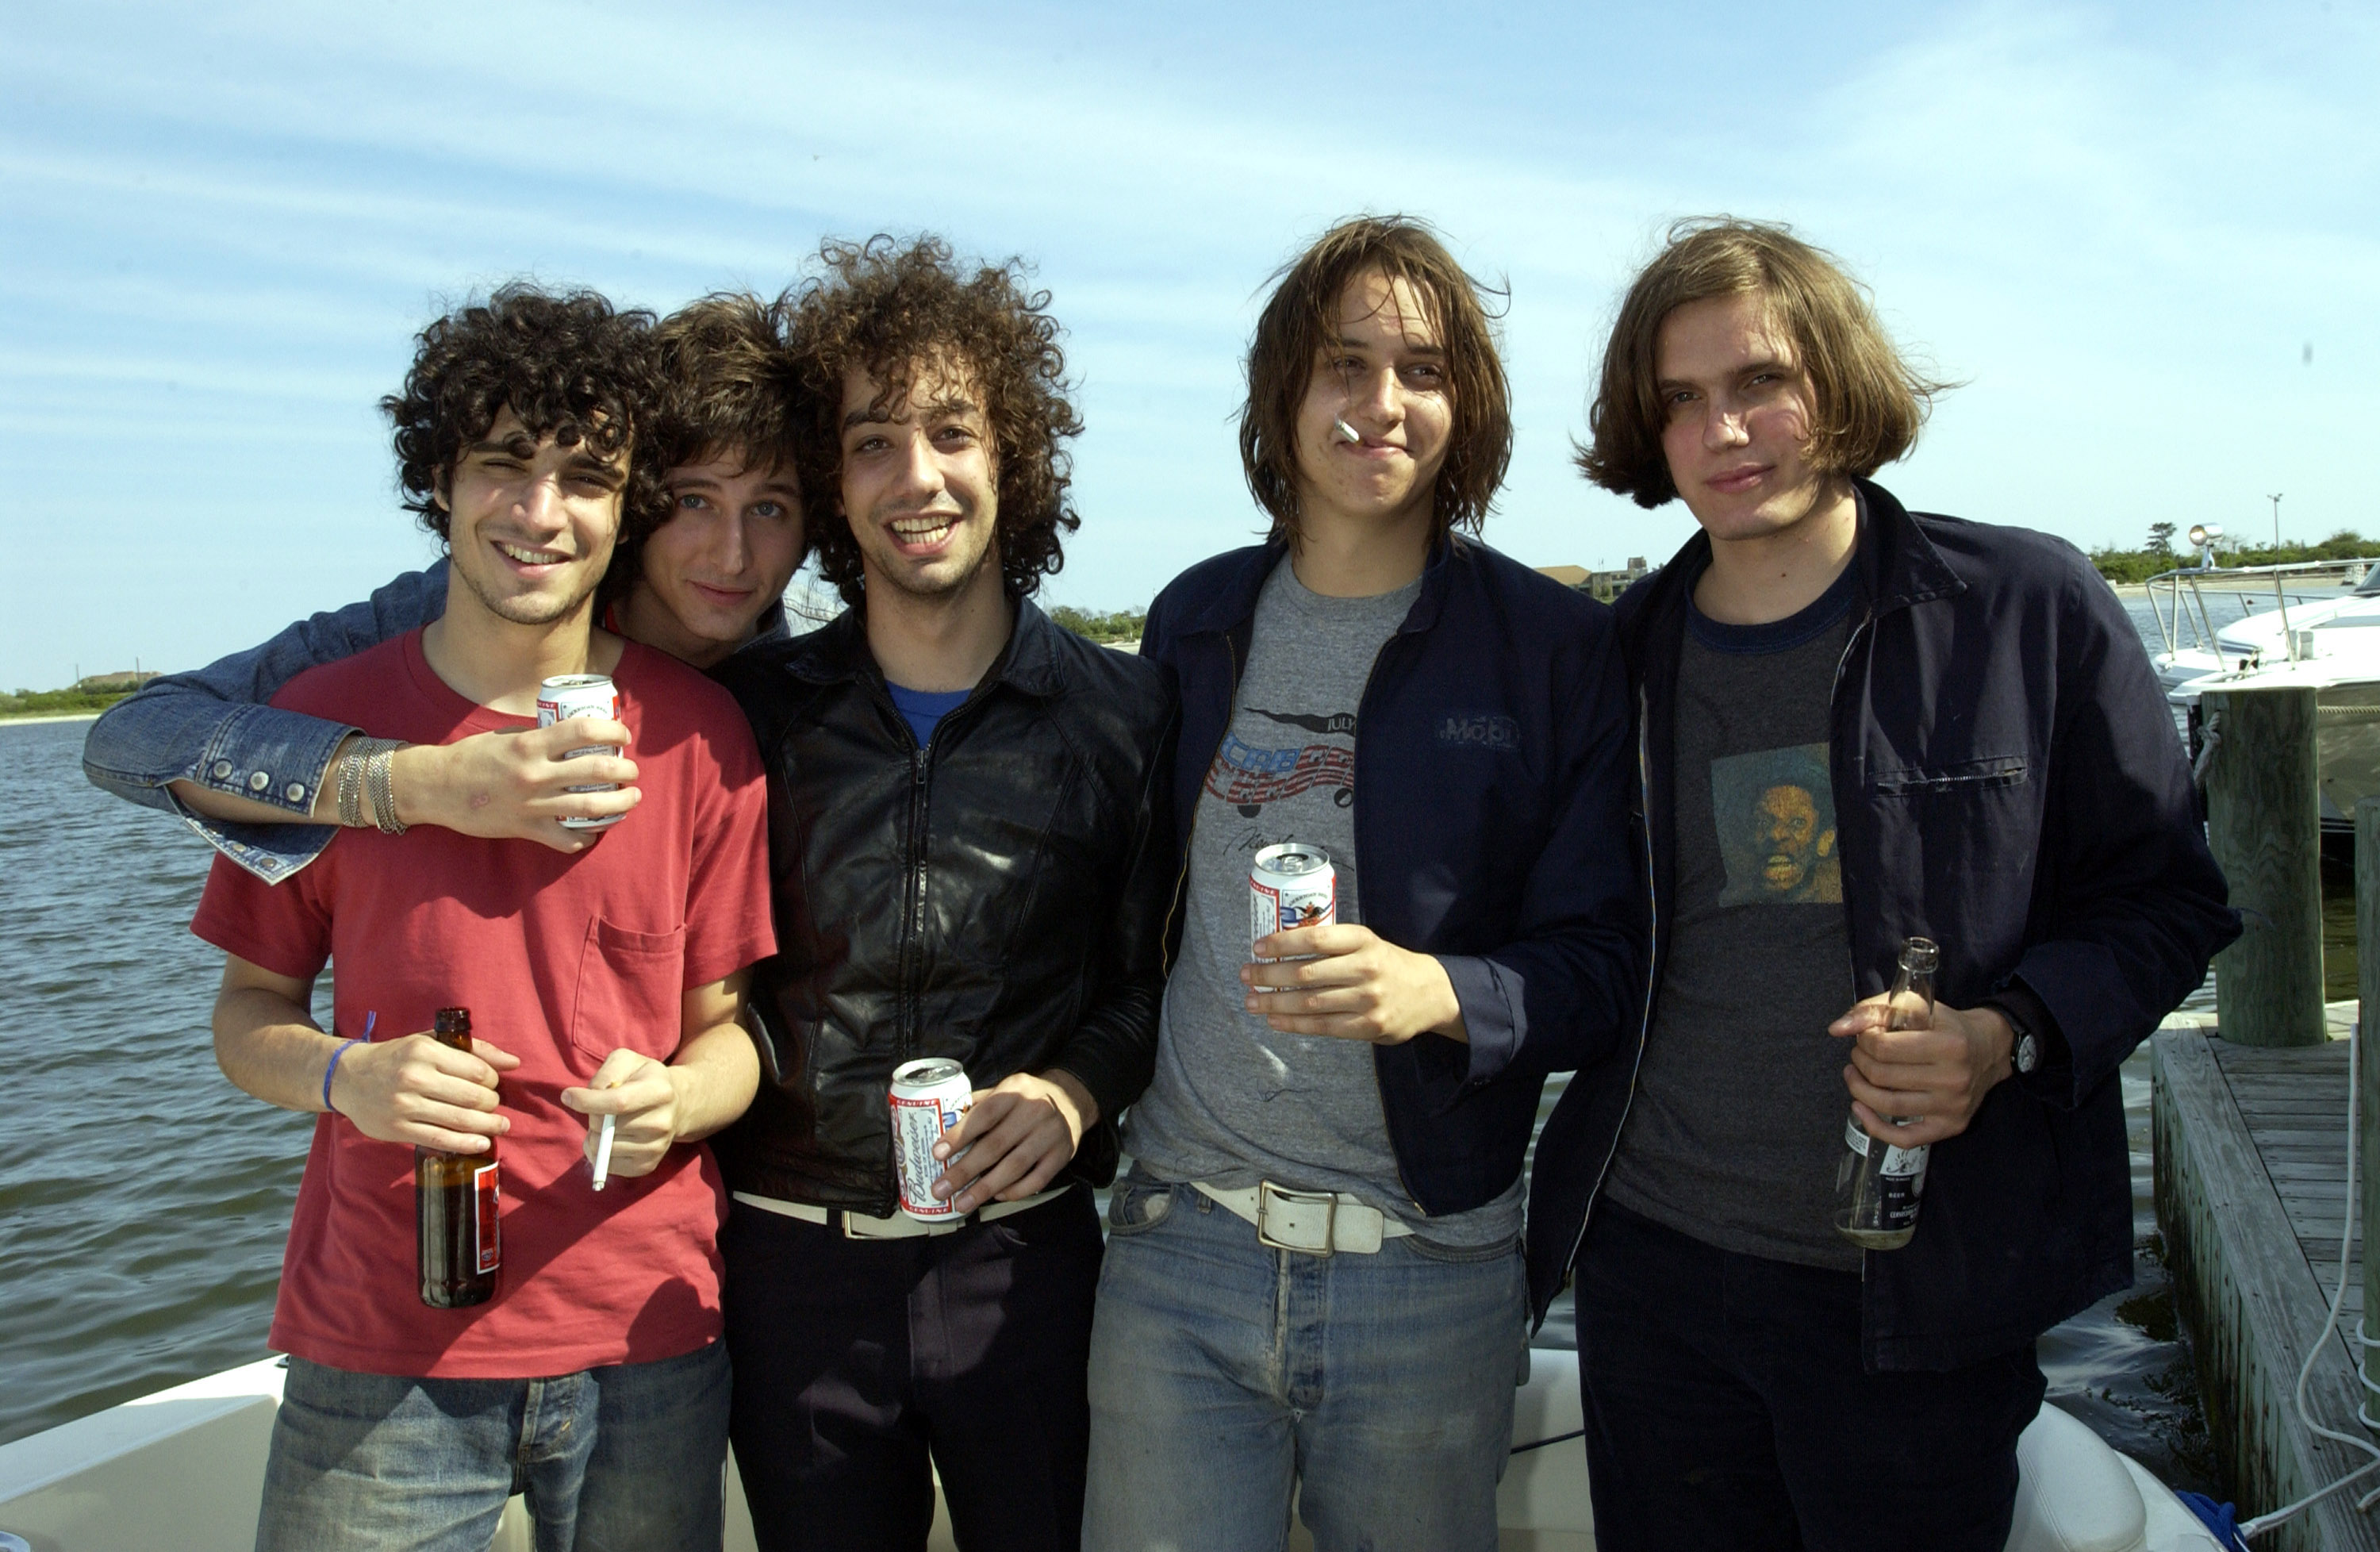 (EXCLUSIVE, Premium Rates Apply) The Strokes on Kevin Mazur's boat docked behind Jones Beach Theater (Photo by KMazur/WireIma